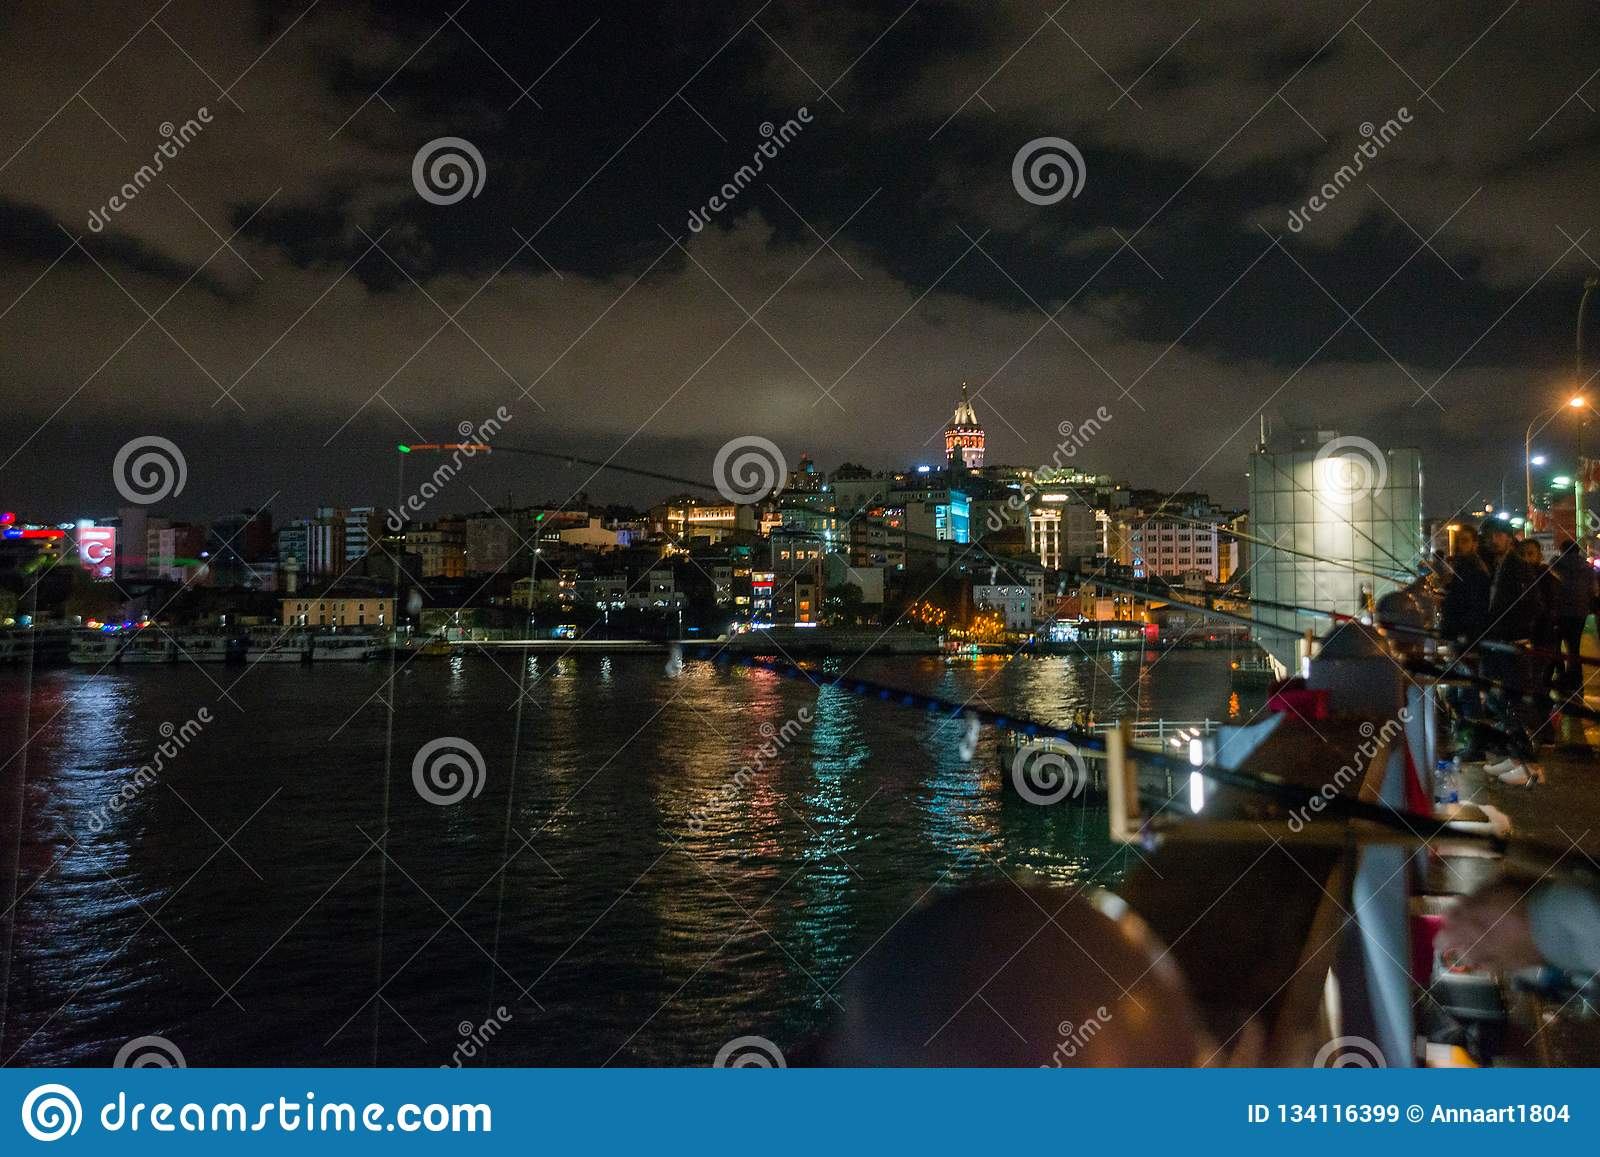 Galata or Beyoglu district of Istanbul at night, Turkey. This is one of the main tourist places in Istanbul. Beautiful panorama of